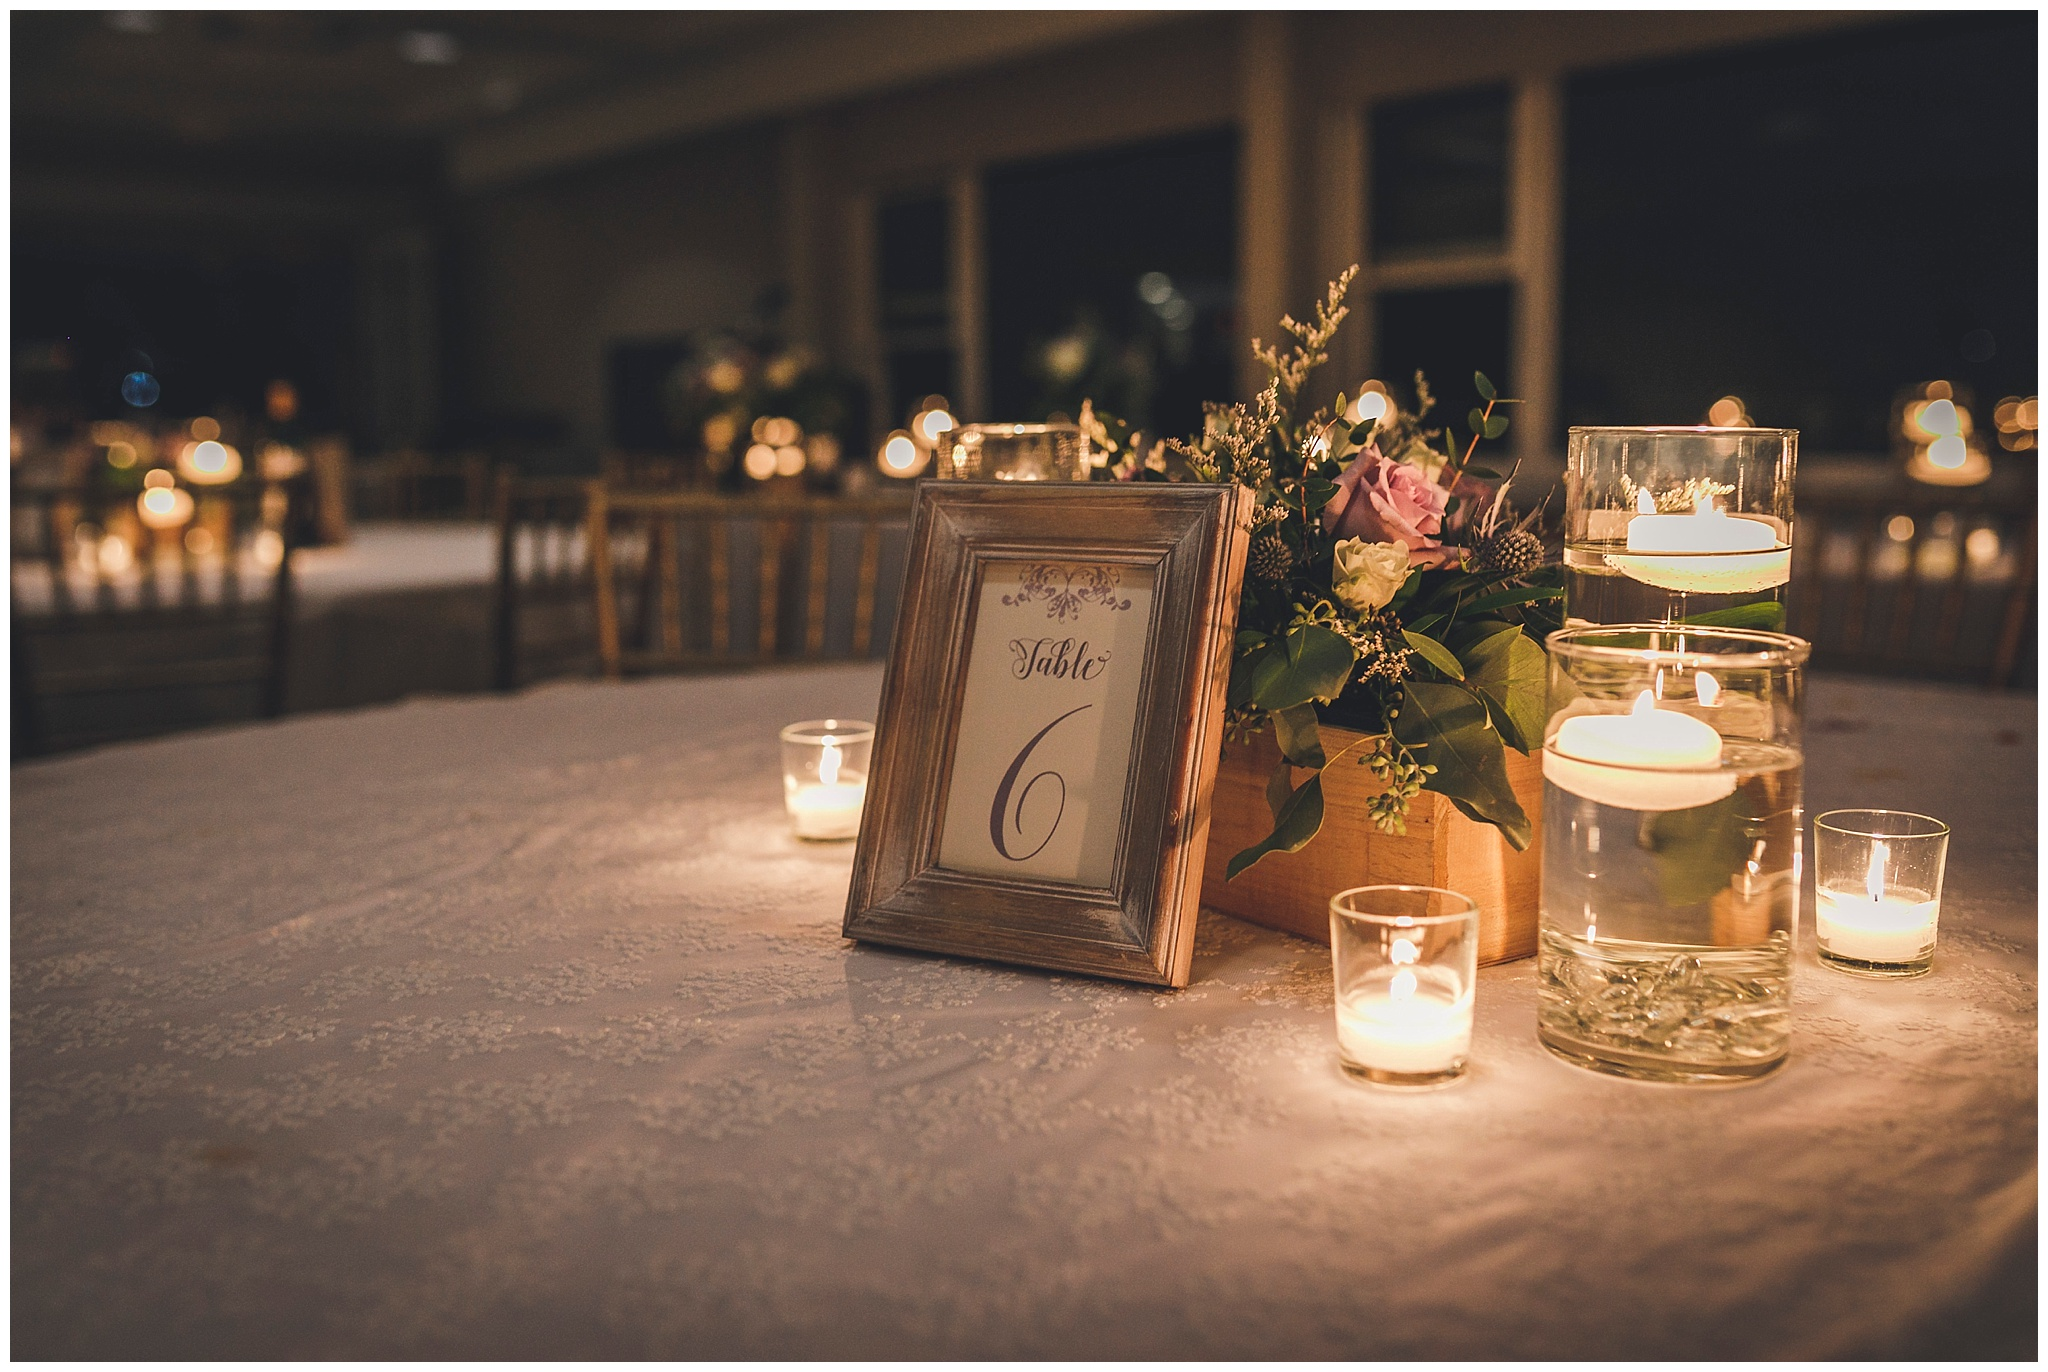 Candlelight decor By Sharpe Design at Bally Haly